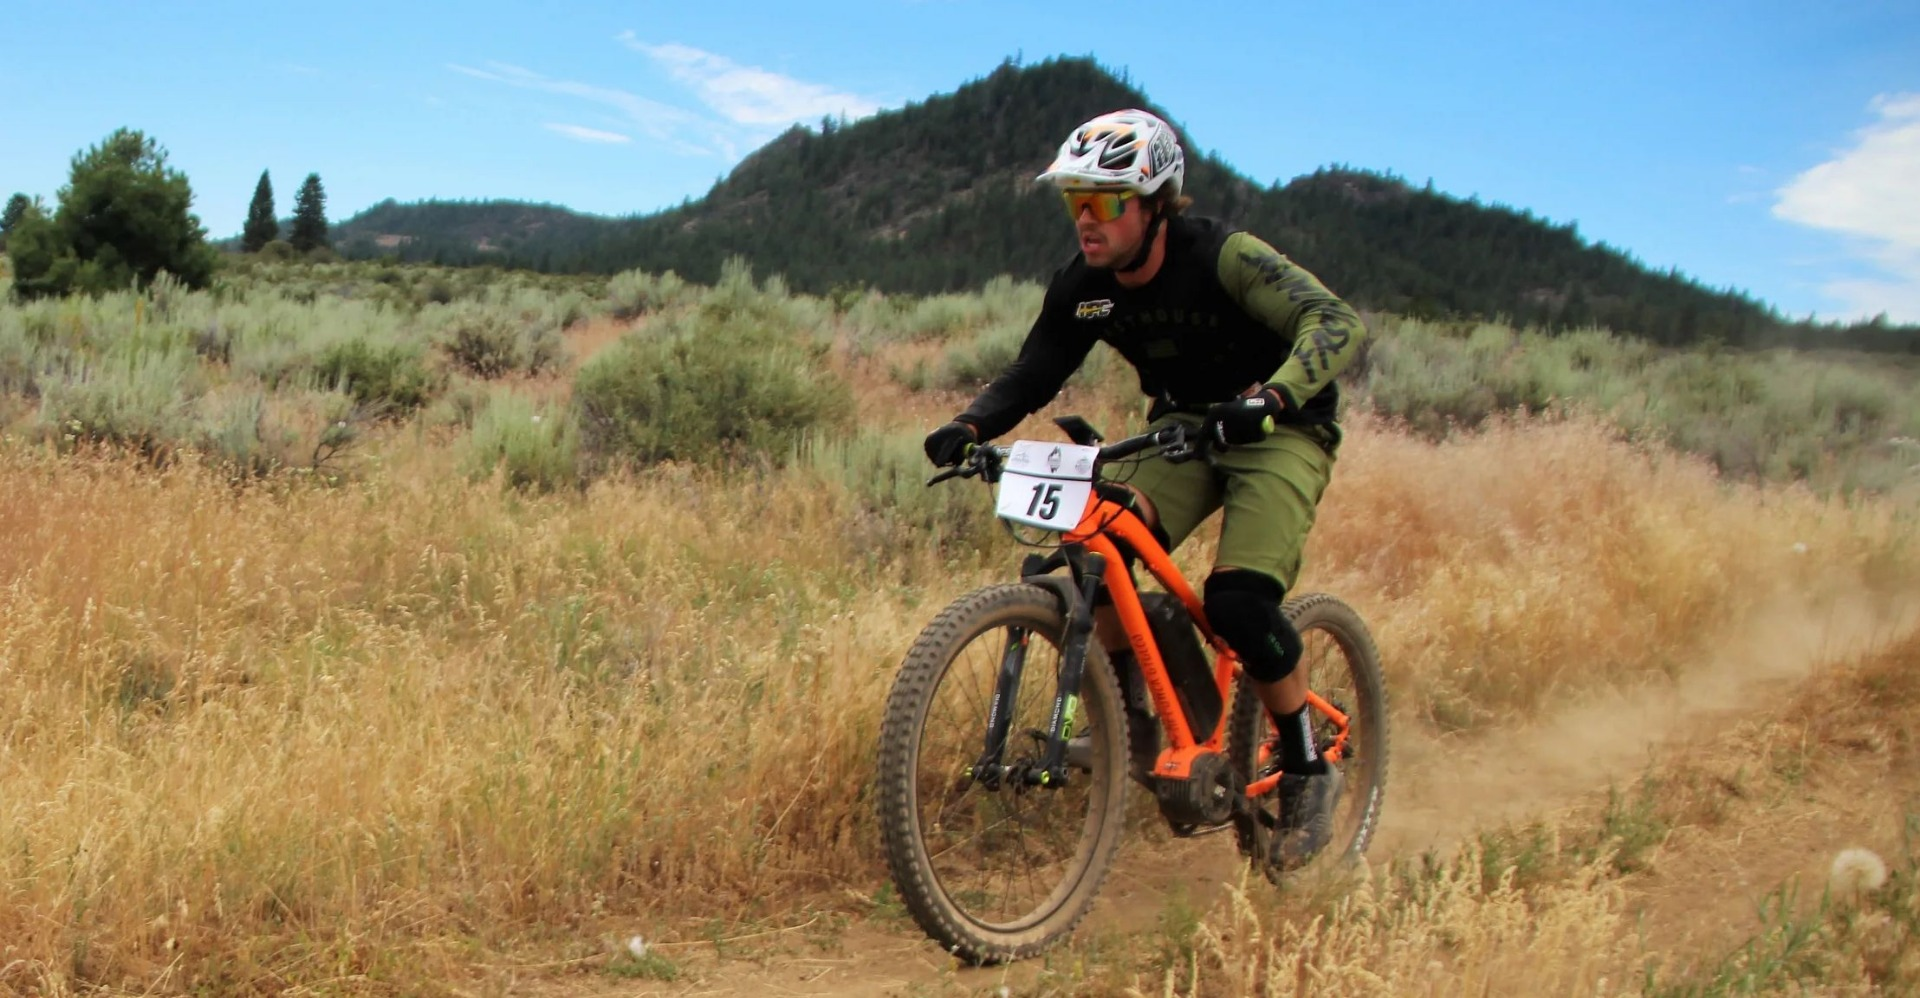 Scout Pro hardtail e-bike can motor up to 45 mph